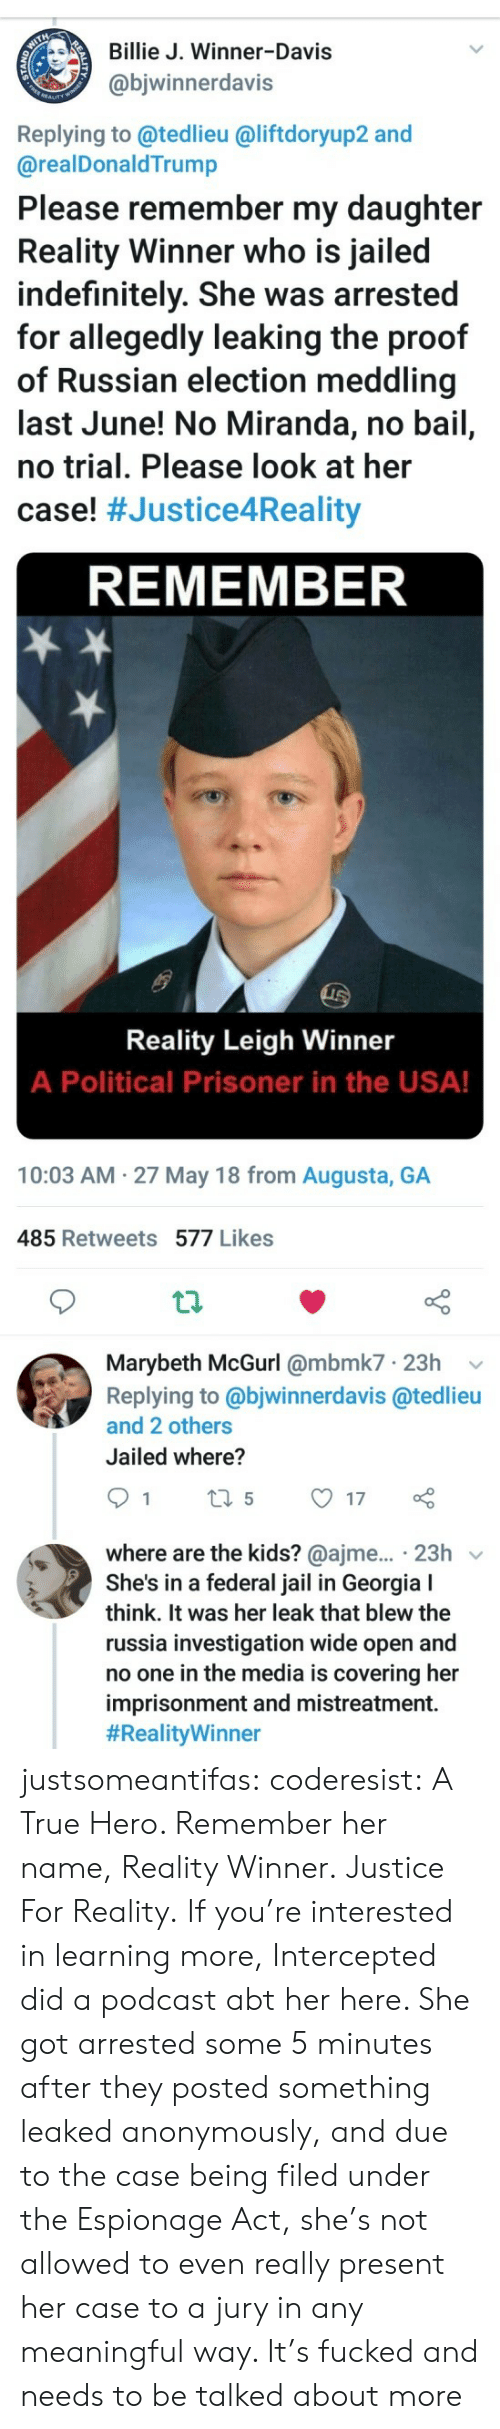 Leaking: Billie J. Winner-Davis  @bjwinnerdavis  Replying to @tedlieu @liftdoryup2 and  @realDonaldTrump  Please remember my daughter  Reality Winner who is jailed  indefinitely. She was arrested  for allegedly leaking the proof  of Russian election meddling  last June! No Miranda, no bail,  no trial. Please look at her  case! #Justice4Reality  REMEMBER  Reality Leigh Winner  A Political Prisoner in the USA!  10:03 AM 27 May 18 from Augusta, GA  485 Retweets 577 Likes  th  Marybeth McGurl @mbmk7 23h v  Replying to @bjwinnerdavis @tedlieu  and 2 others  Jailed where?  where are the kids? @ajme... 23h v  She's in a federal jail in Georgia I  think. It was her leak that blew the  russia investigation wide open and  no one in the media is covering her  imprisonment and mistreatment.  justsomeantifas:  coderesist: A True Hero. Remember her name, Reality Winner. Justice For Reality.   If you're interested in learning more, Intercepted did a podcast abt her here. She got arrested some 5 minutes after they posted something leaked anonymously, and due to the case being filed under the Espionage Act, she's not allowed to even really present her case to a jury in any meaningful way. It's fucked and needs to be talked about more